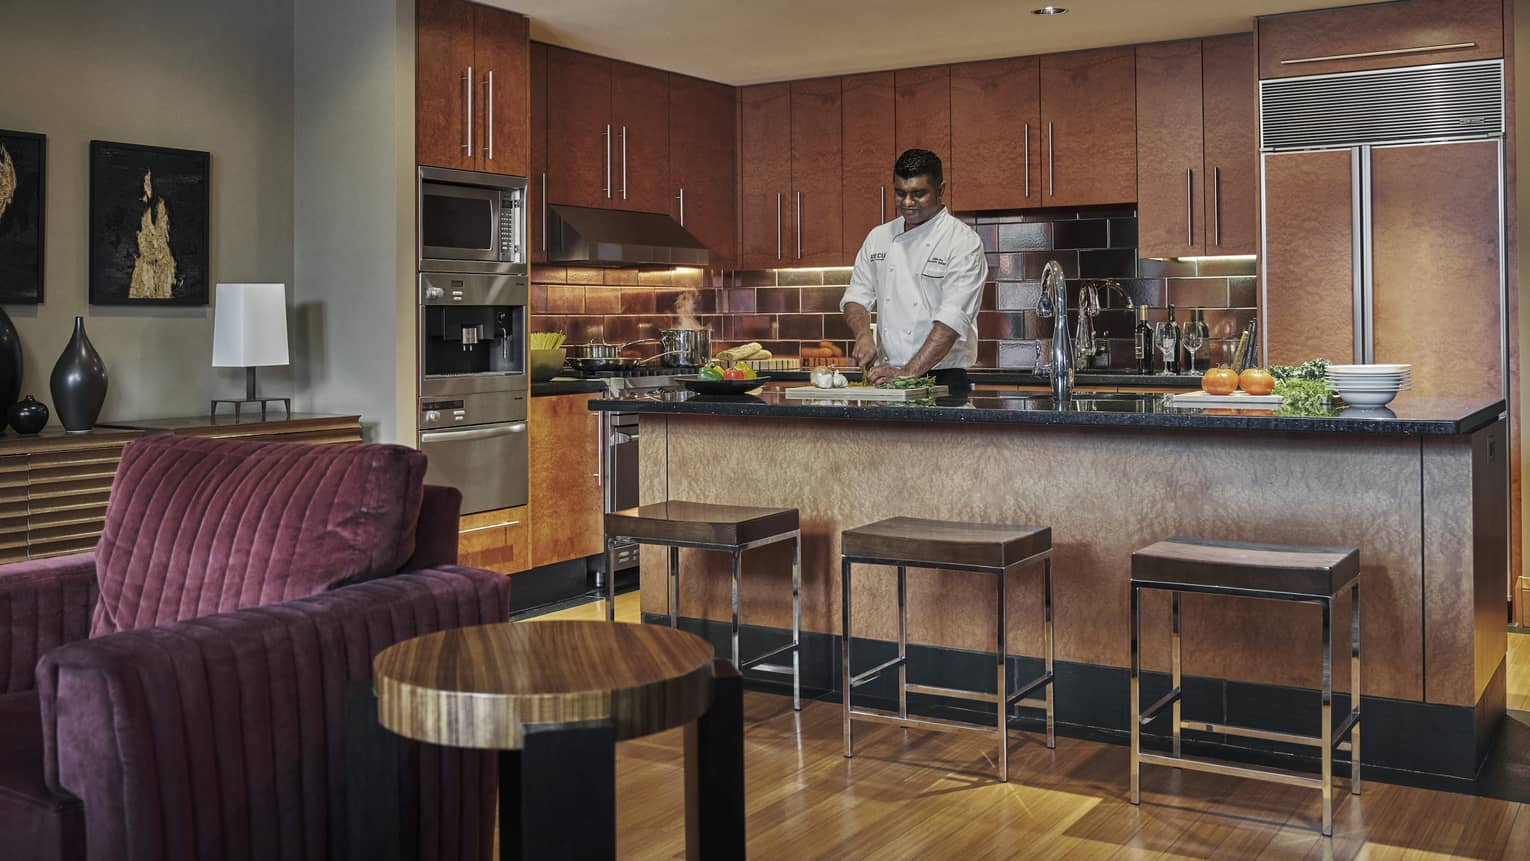 Chef prepares meal in kitchen that overlooks living room